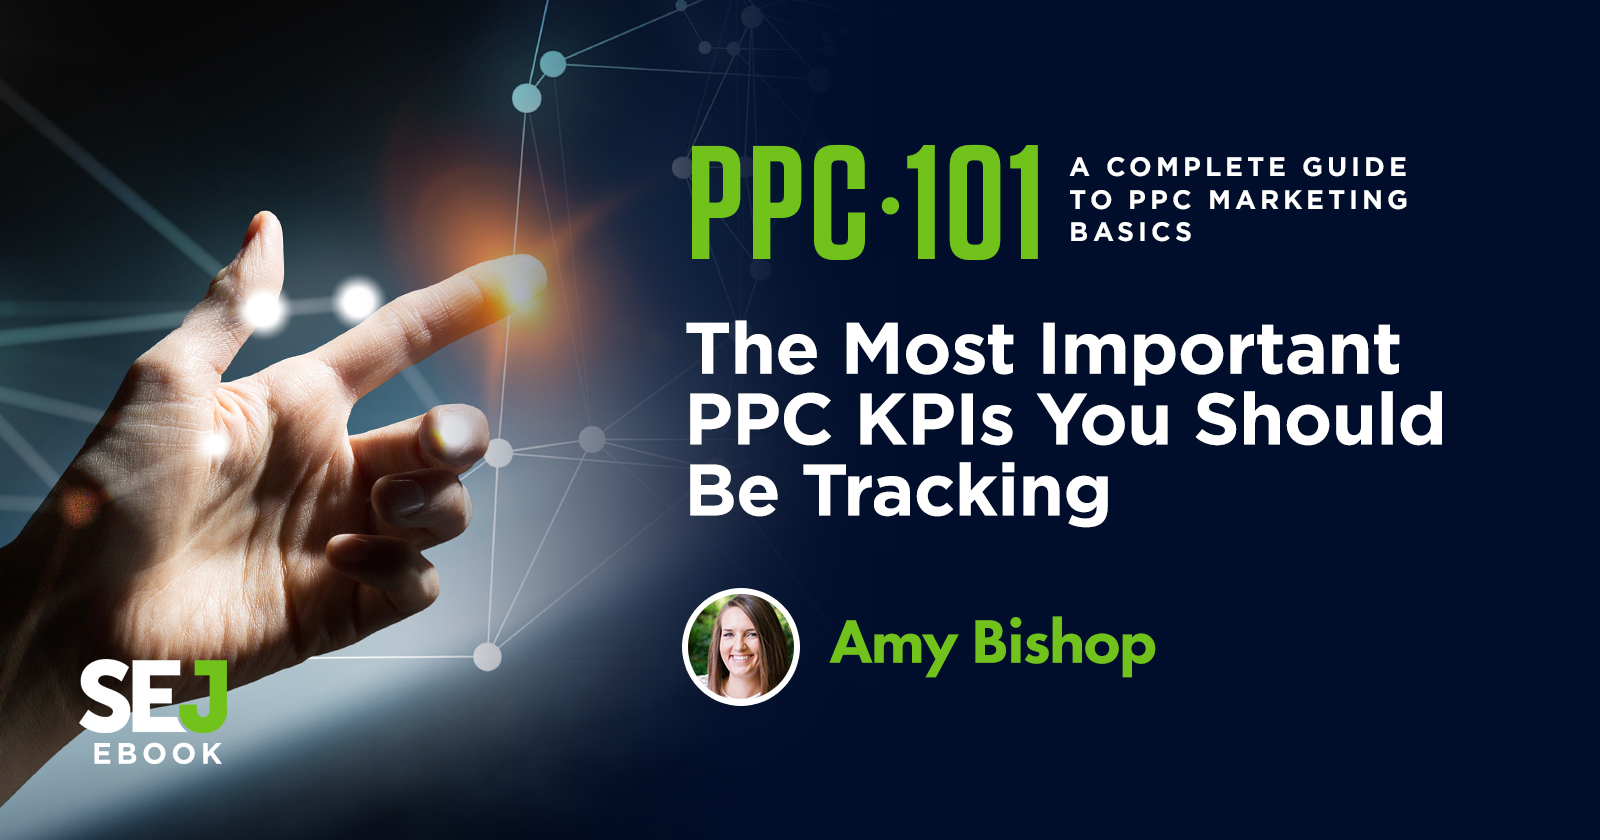 The Most Important PPC KPIs That You Should Be Tracking